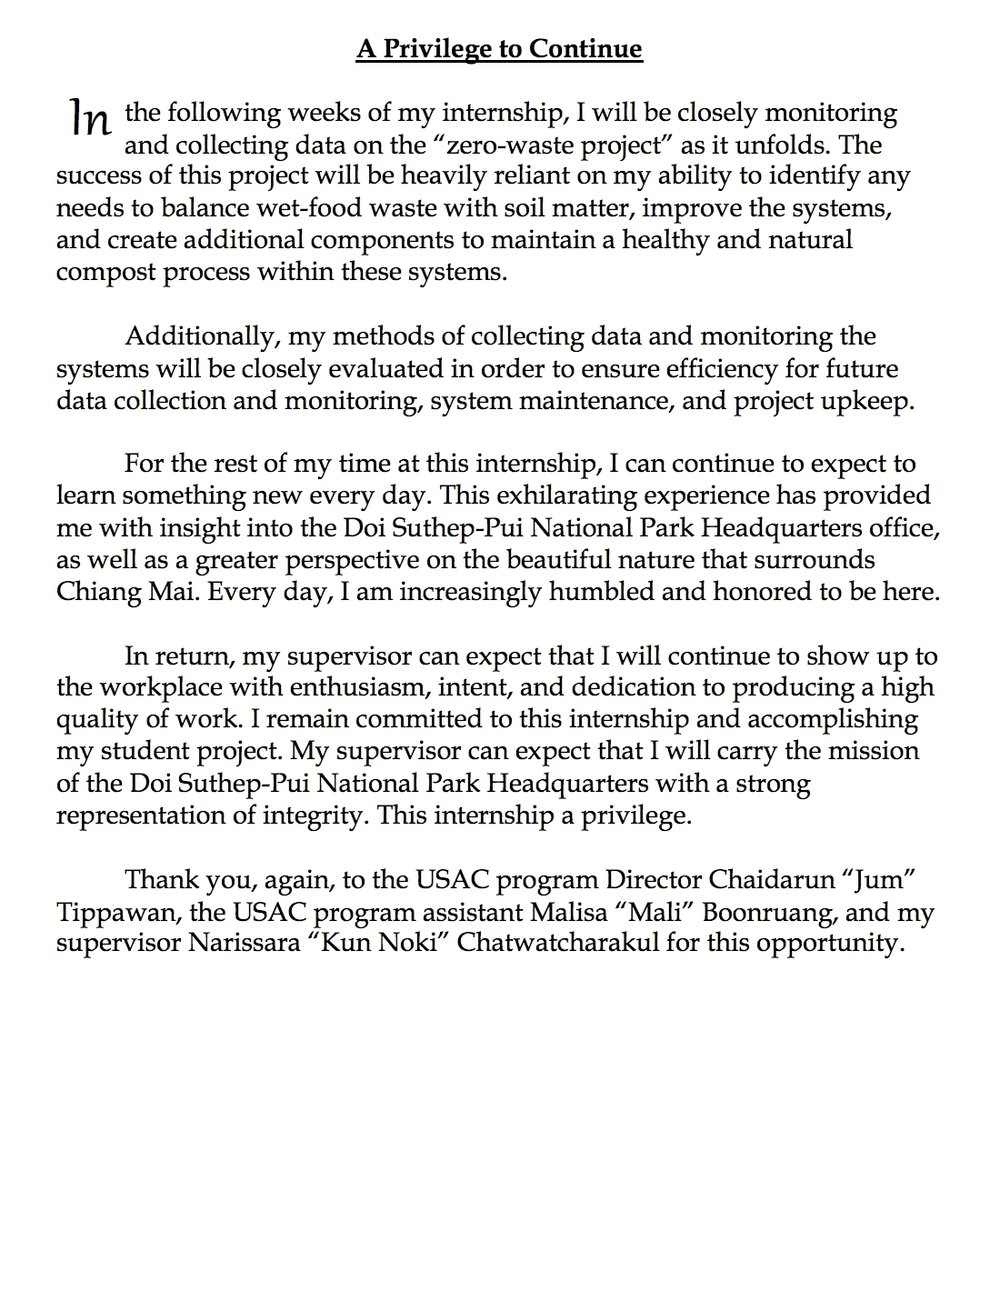 Mid-Term Intern Essay pg5.jpg